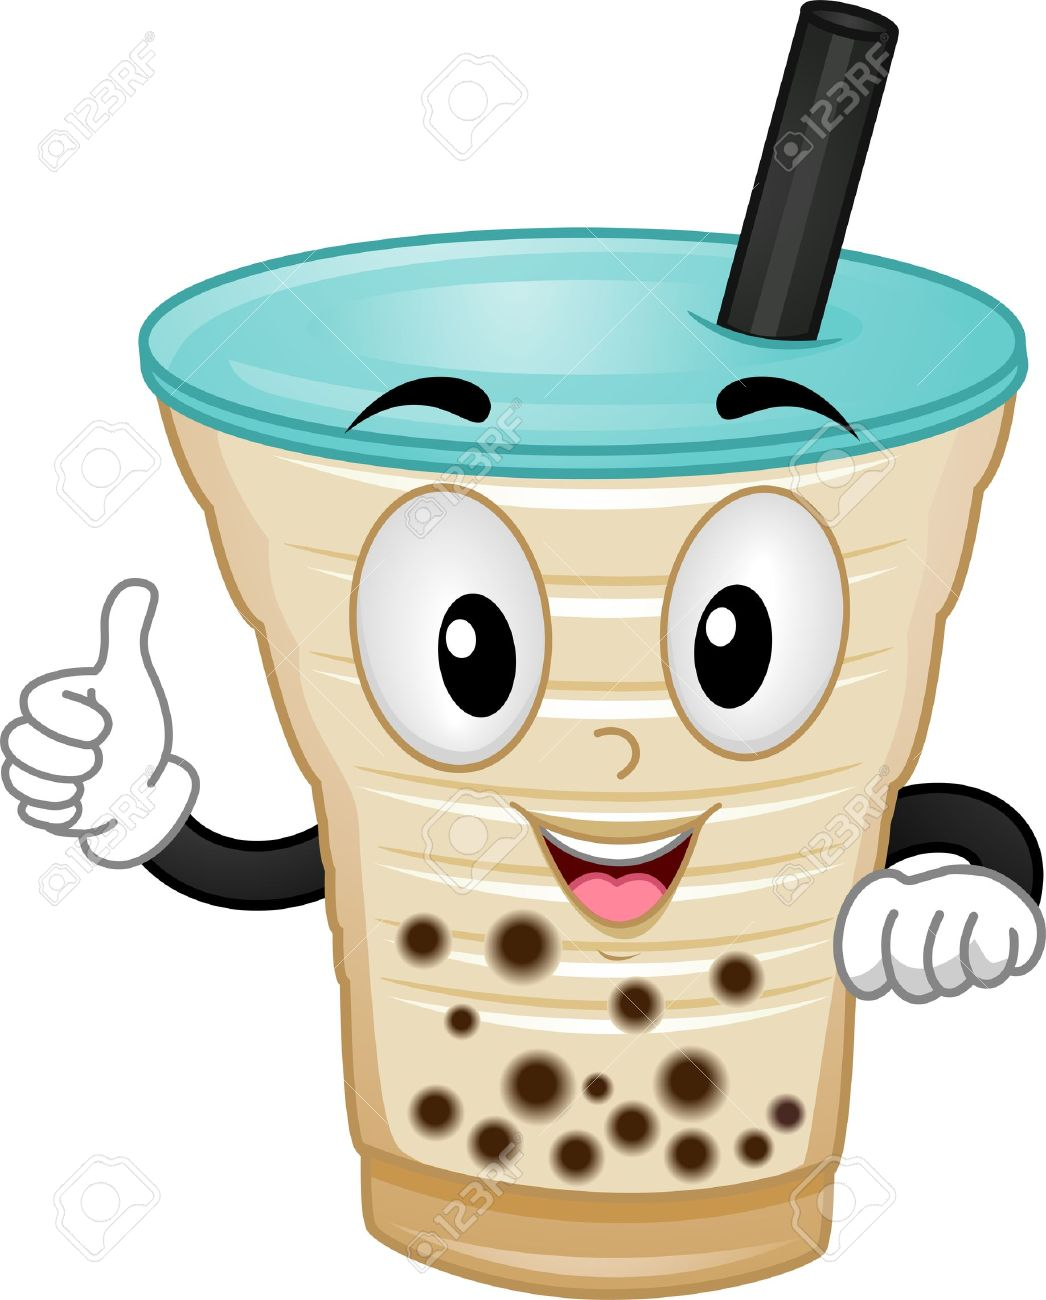 Mascot Illustration Featuring A Milk Tea Giving A Thumbs Up.